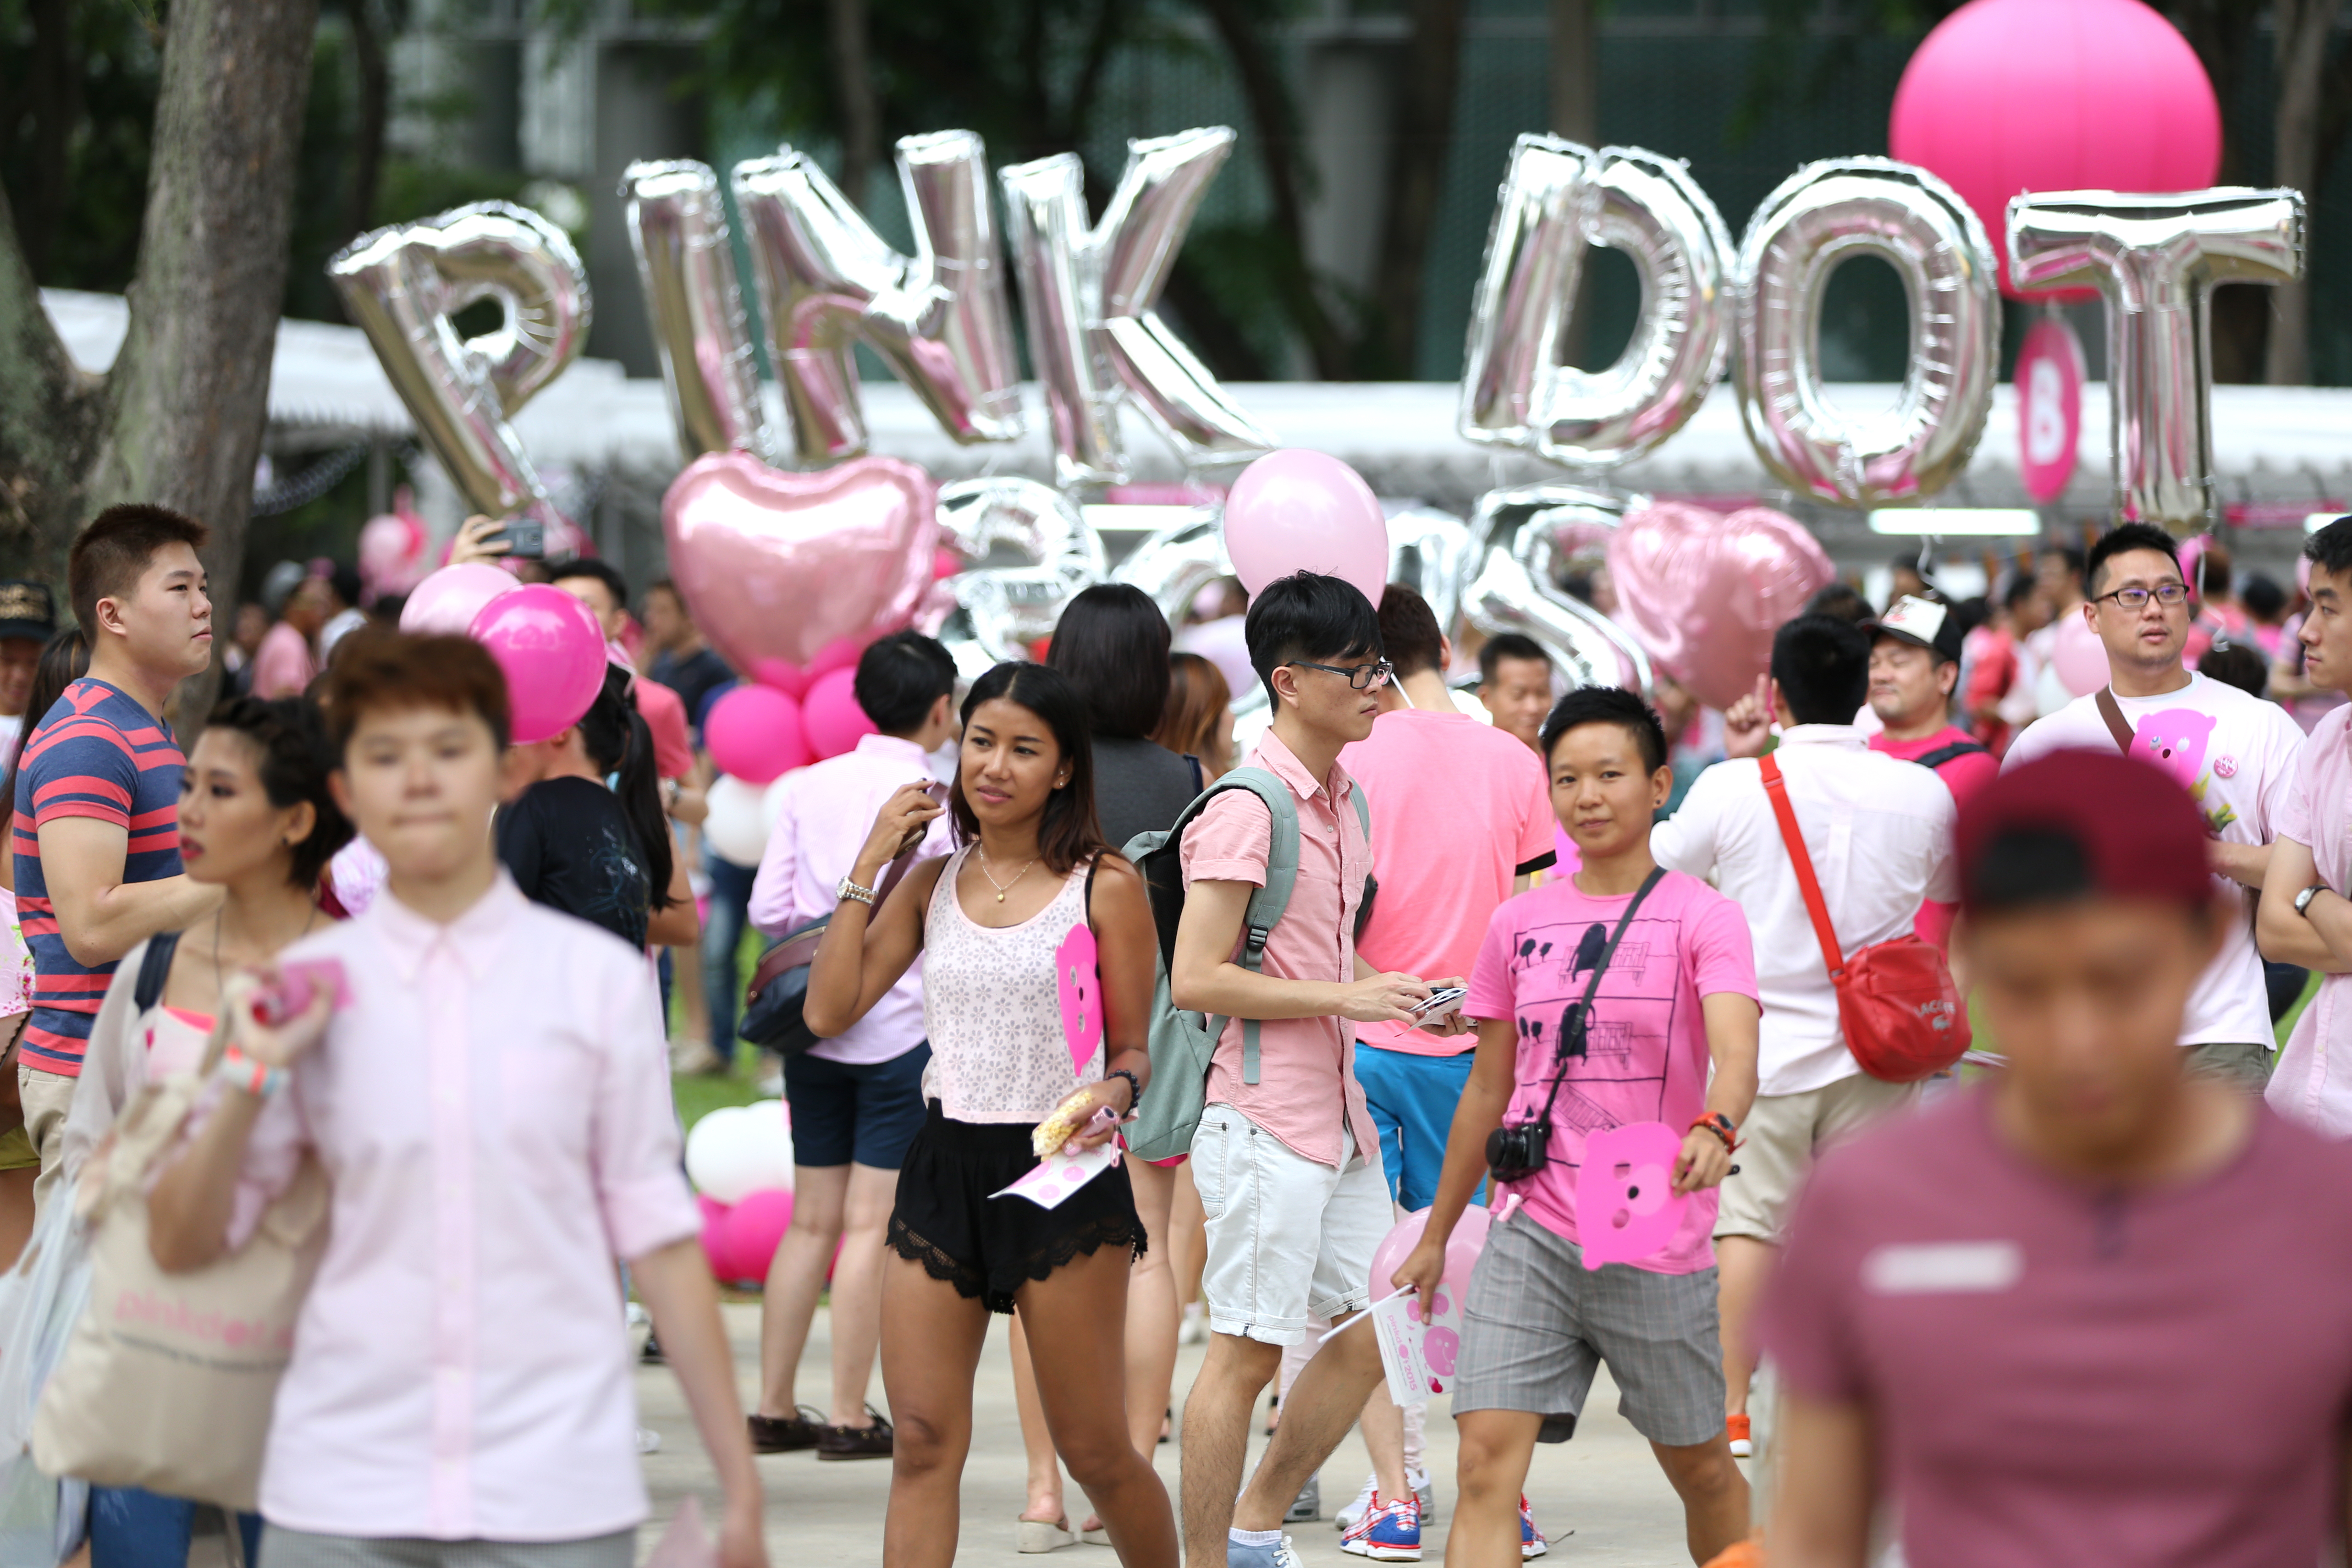 People dressed in various shades of pink attend Pink Dot SG on June 13, 2015 in Singapore